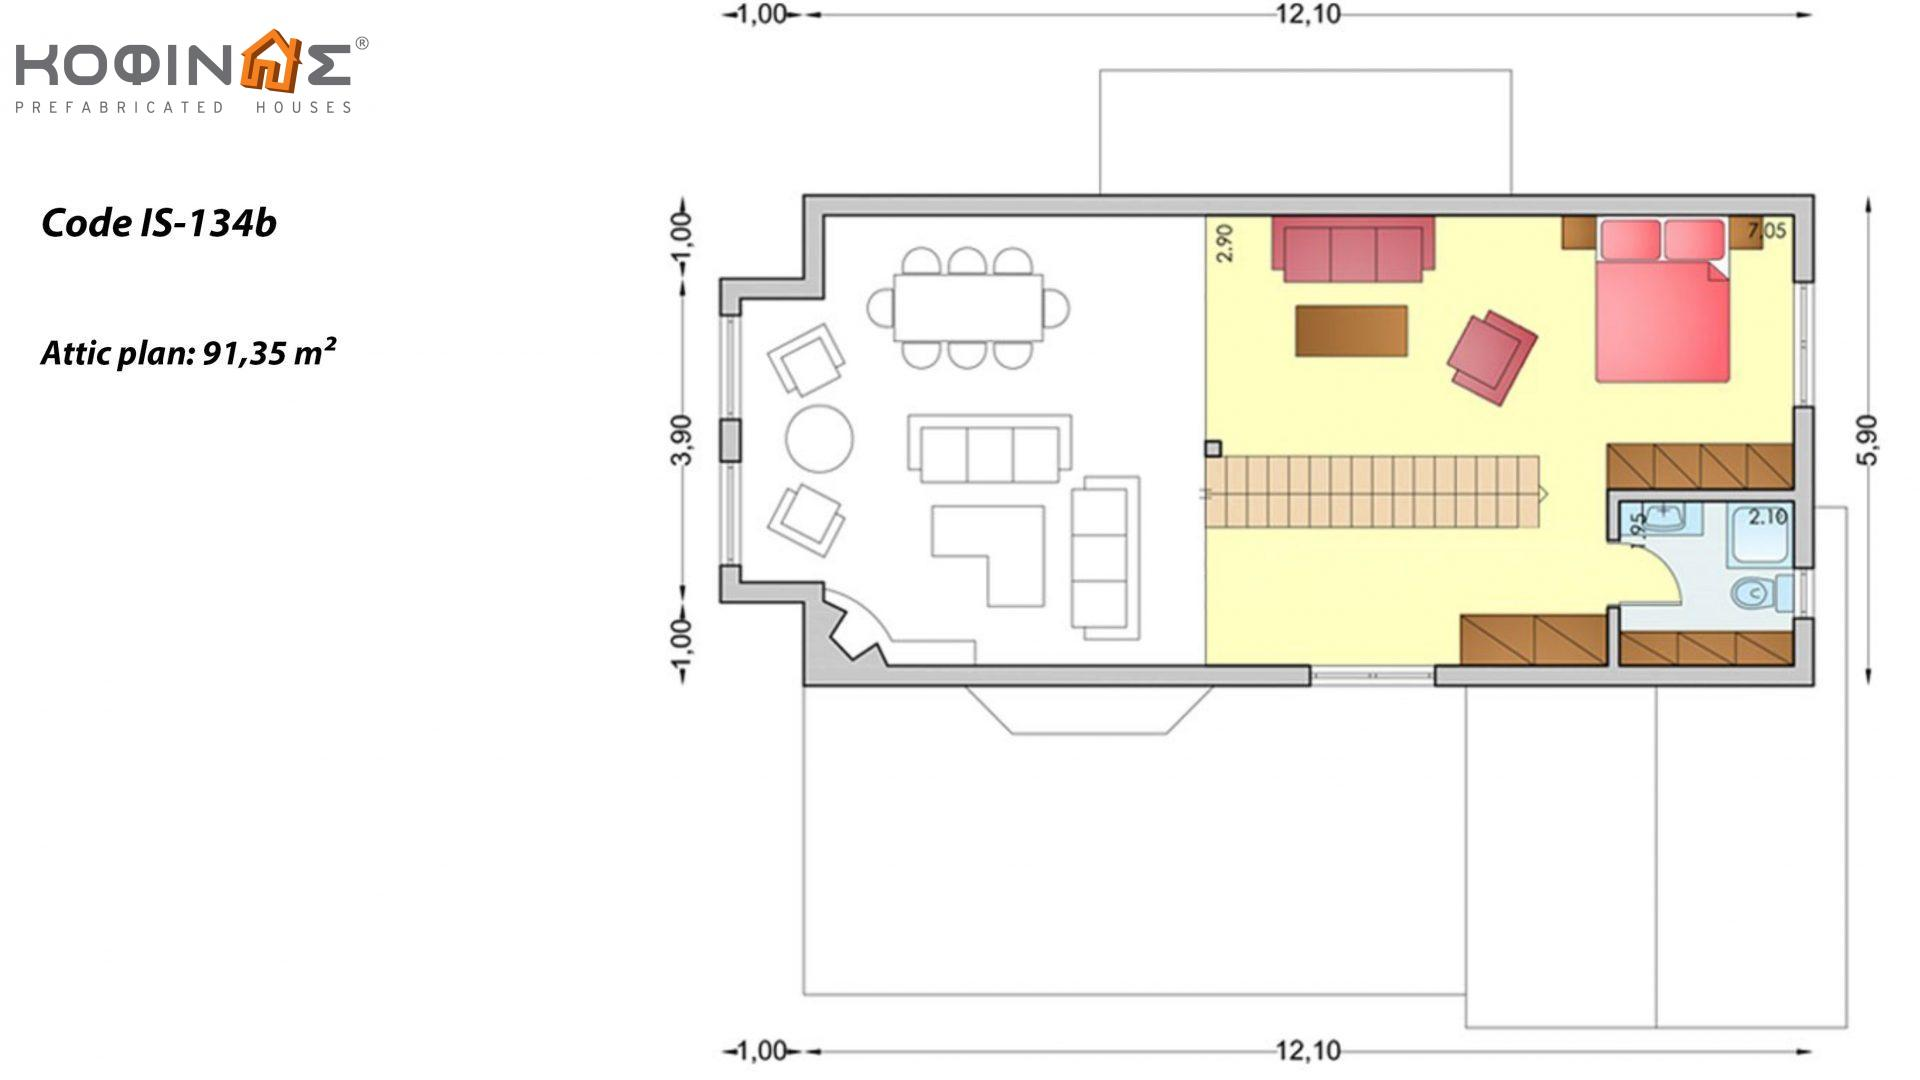 1-story house with attic IS-134b, total surface of 134,25 m²,roofed areas 36,90 m²